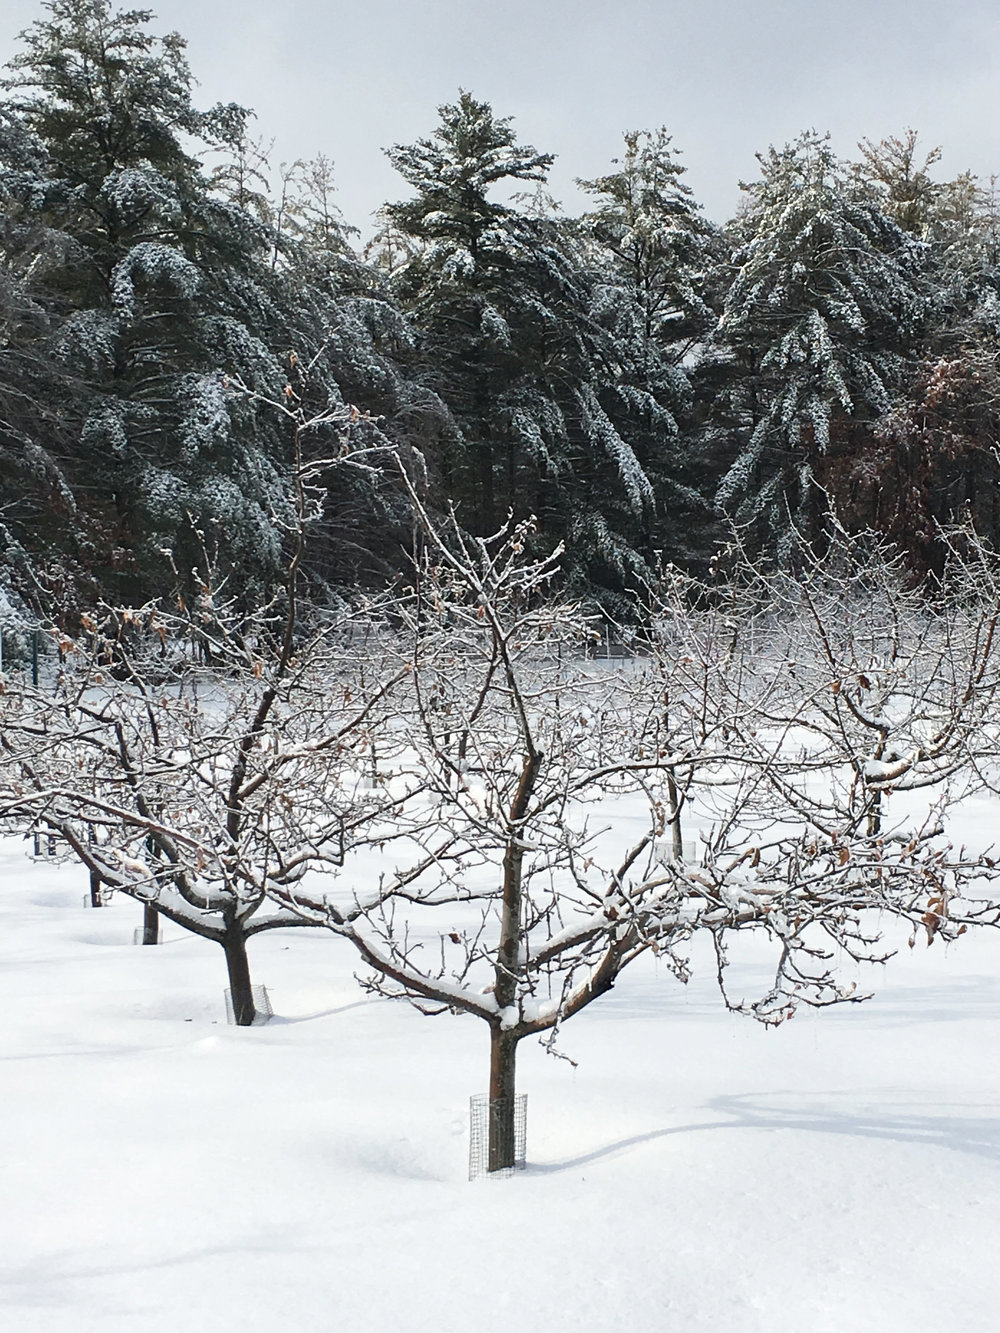 Snow in Orchard.jpg